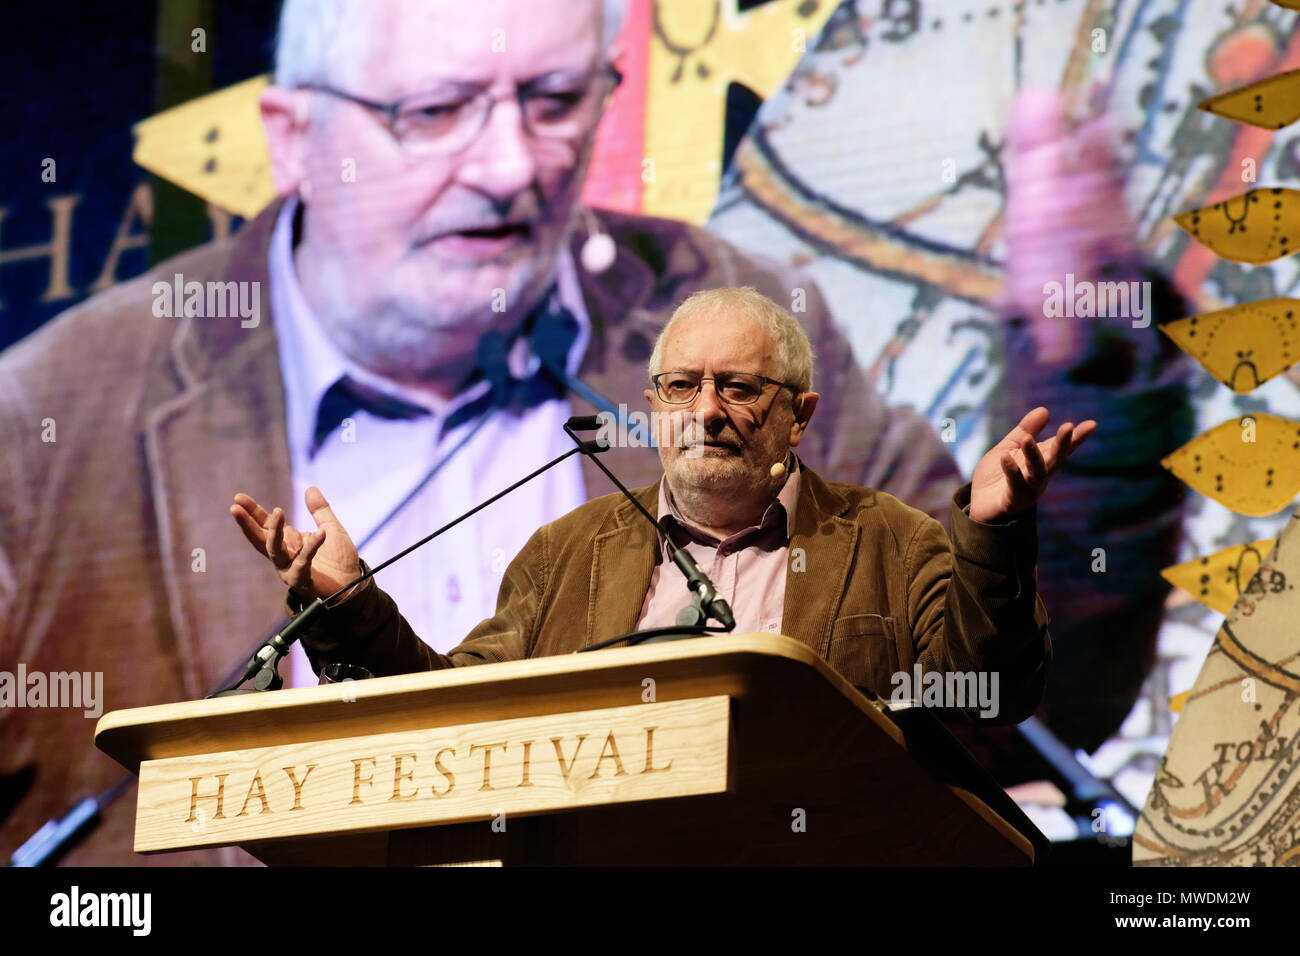 Hay Festival, Hay on Wye, UK - Friday 1st June 2018 - Terry Eagleton, literary theorist and critic on stage at the Hay Festival  - Photo Steven May / Alamy Live News - Stock Image